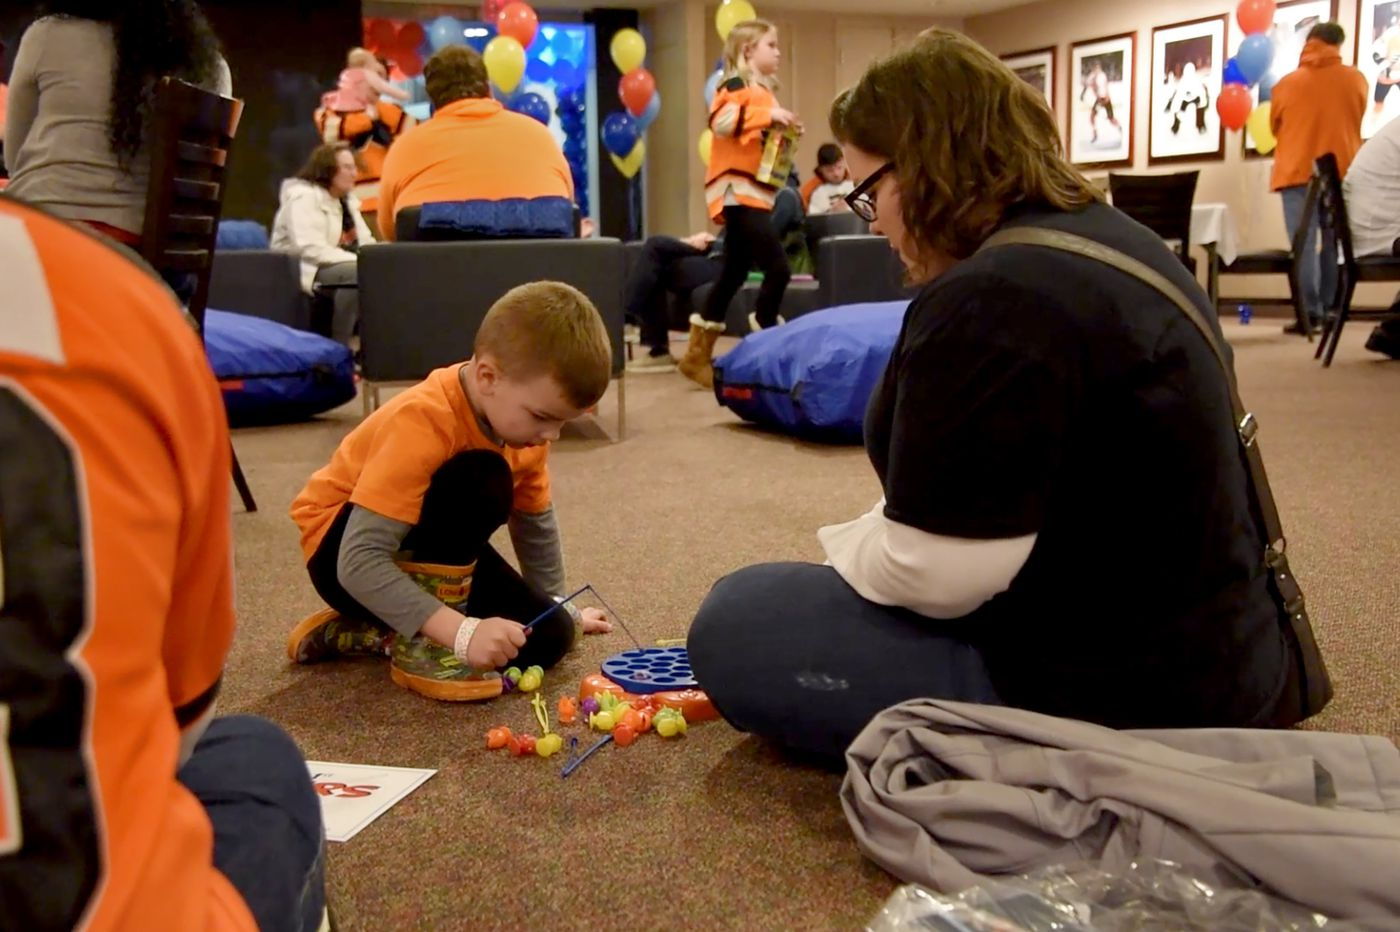 Sensory-friendly room allows autistic Flyers fans to enjoy the game but get away from the craziness